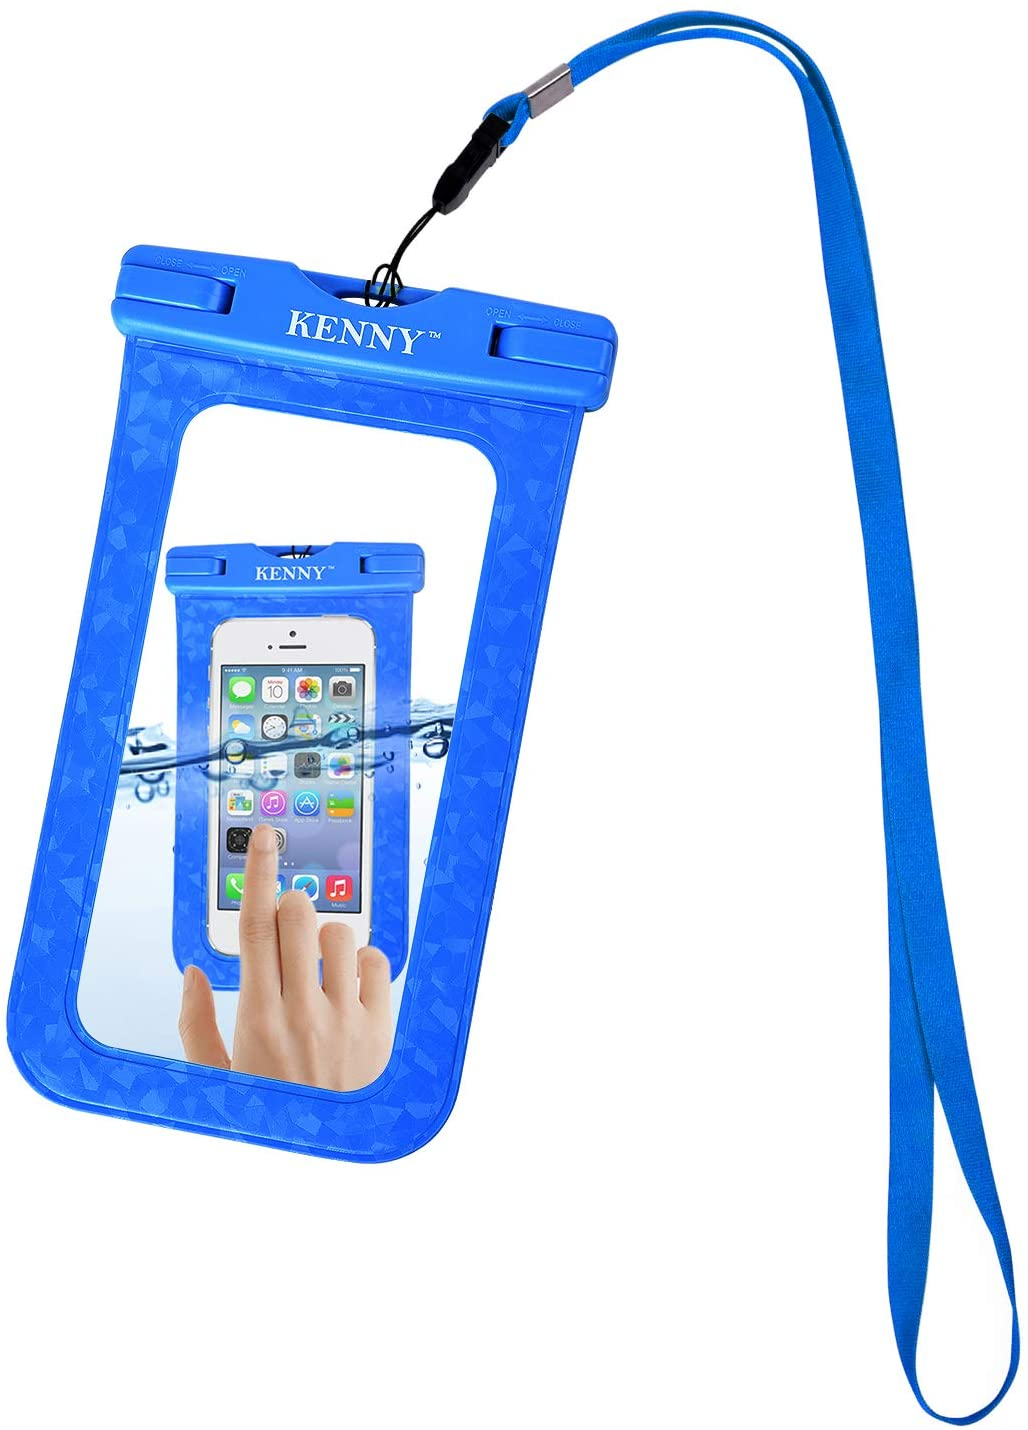 Kenny Waterproof Phone Pouch Cell Dry Bag,IPX8 Waterproof Phone Case with Embossed Design for All Smartphones up to 6.0 Diagonal Size, with Neck Strap, for Water Park Activities (003-Blue)